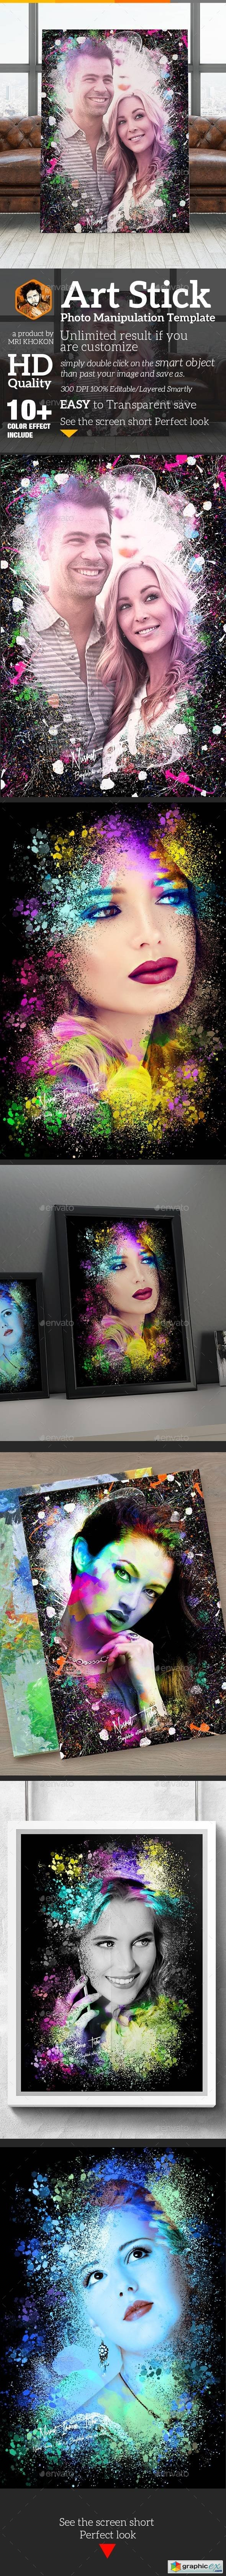 Artistic Photo Manipulation Template 19901555